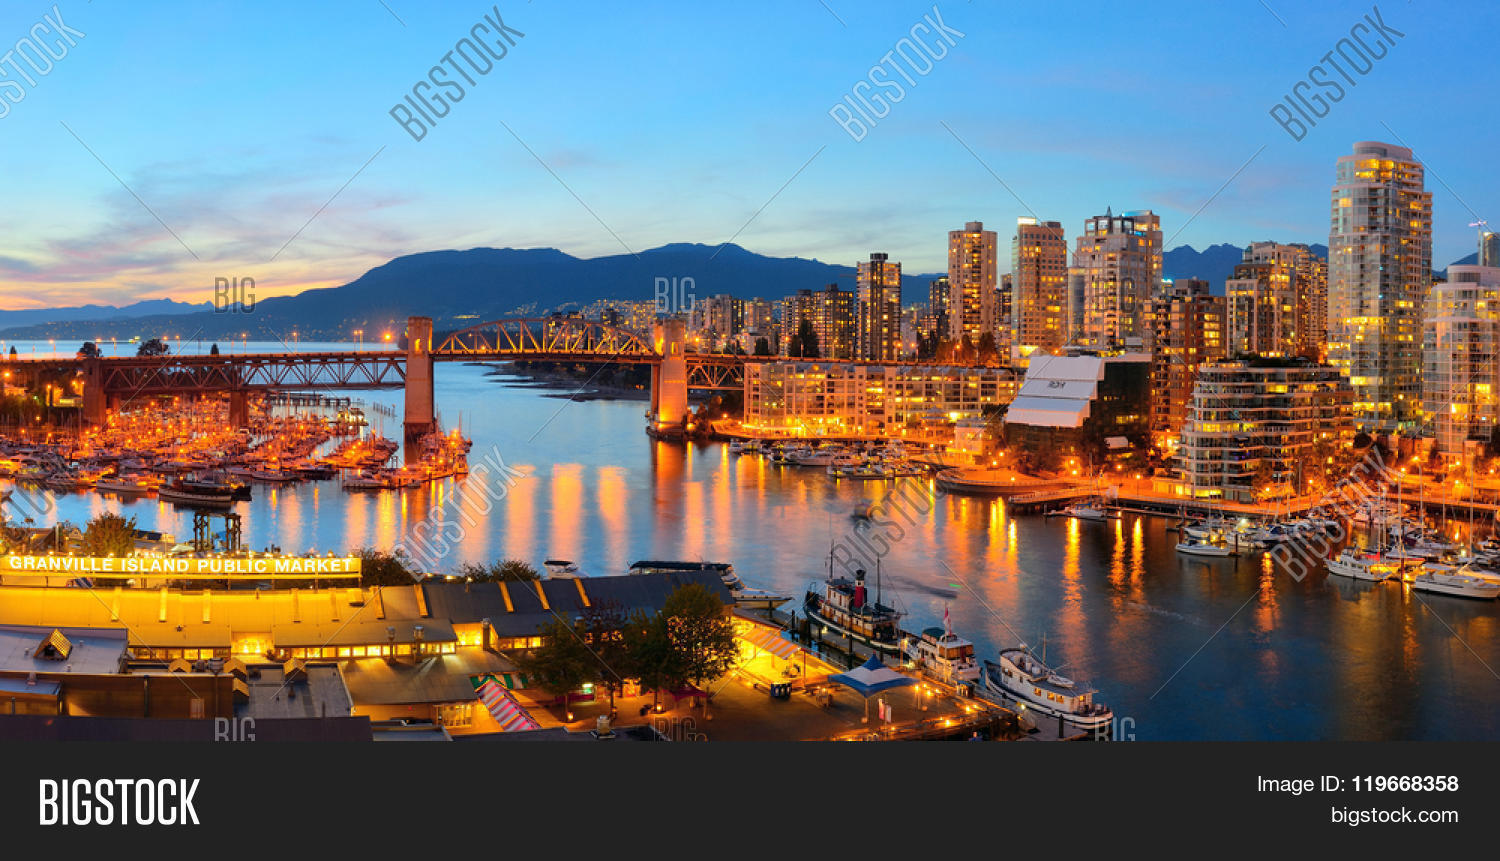 What Is The Population Of Vancouver Island Bc